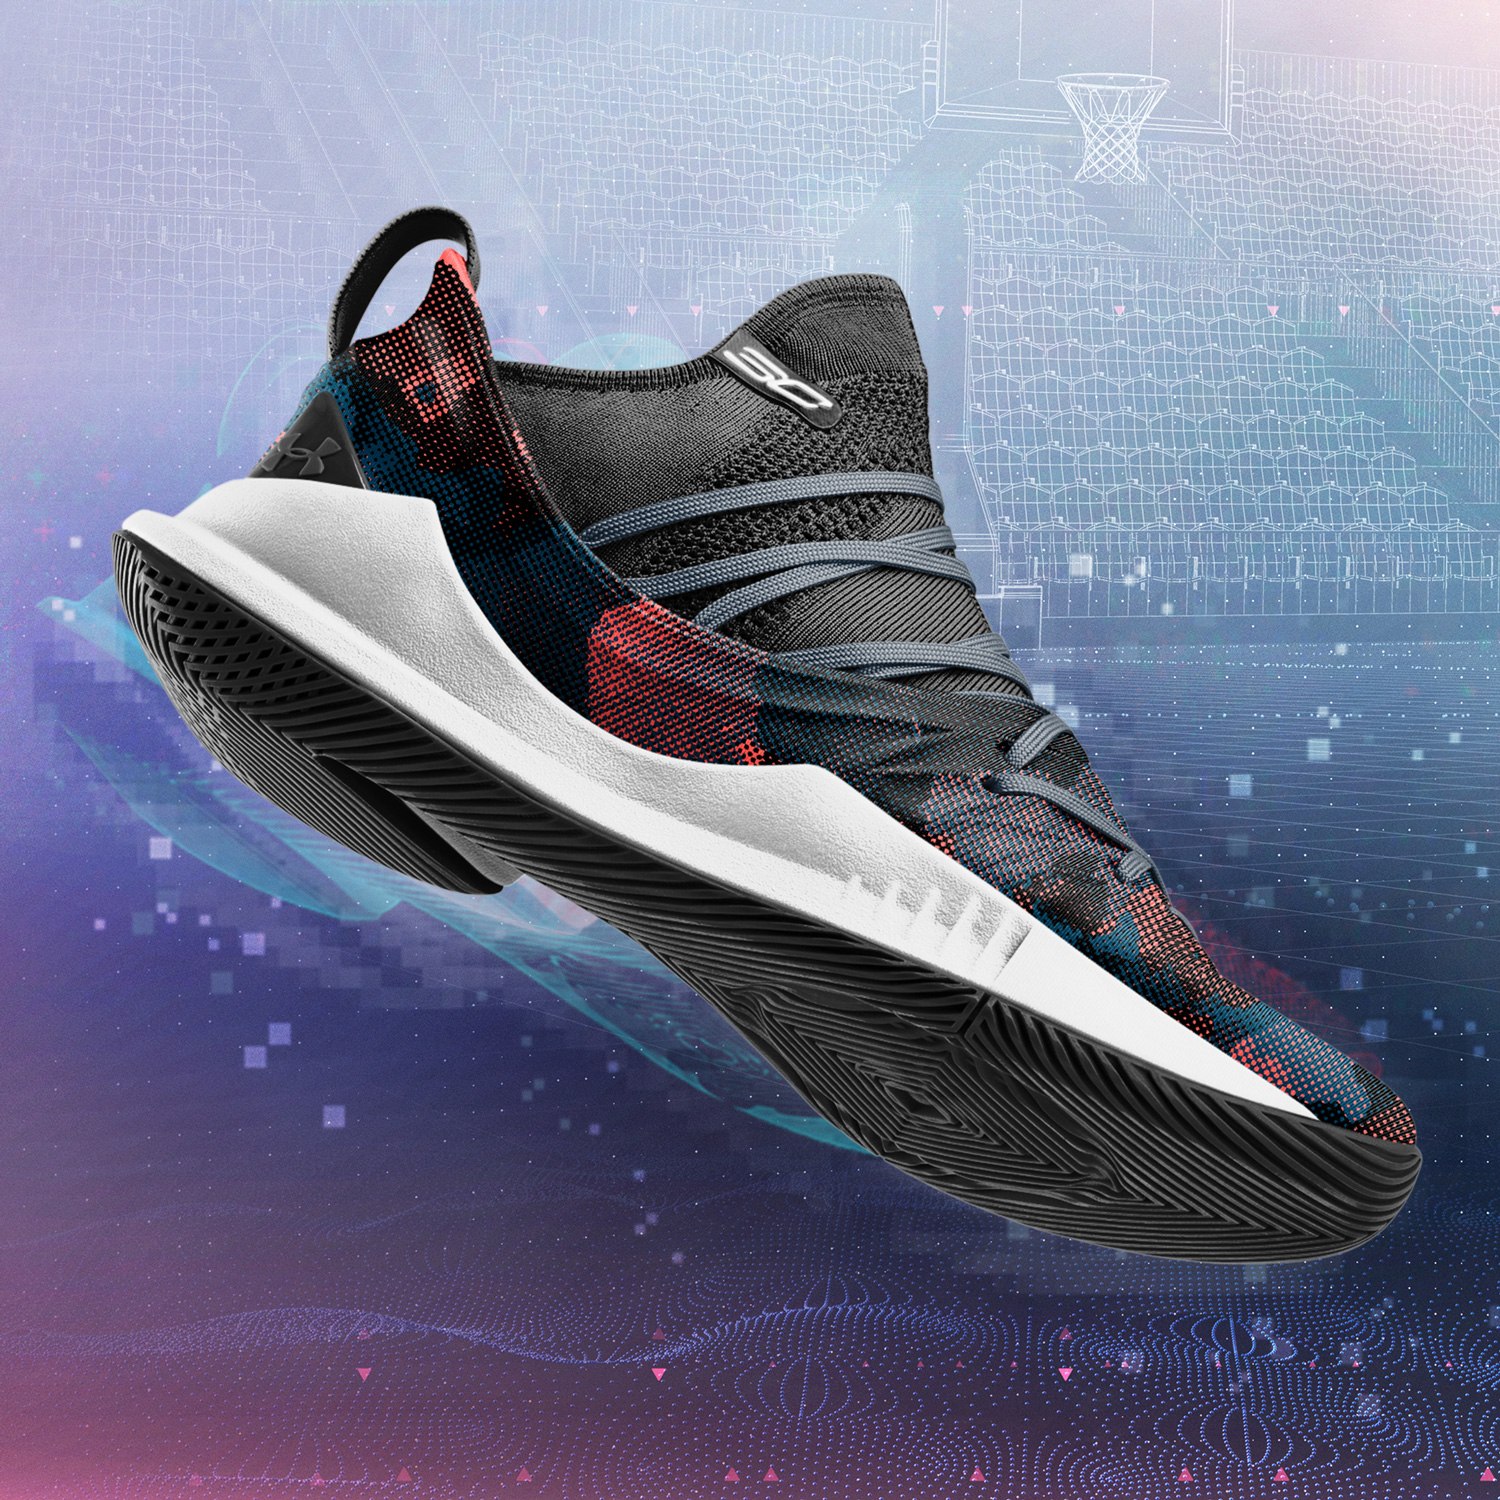 Under Armour Curry 5 ICON Footwear Customization